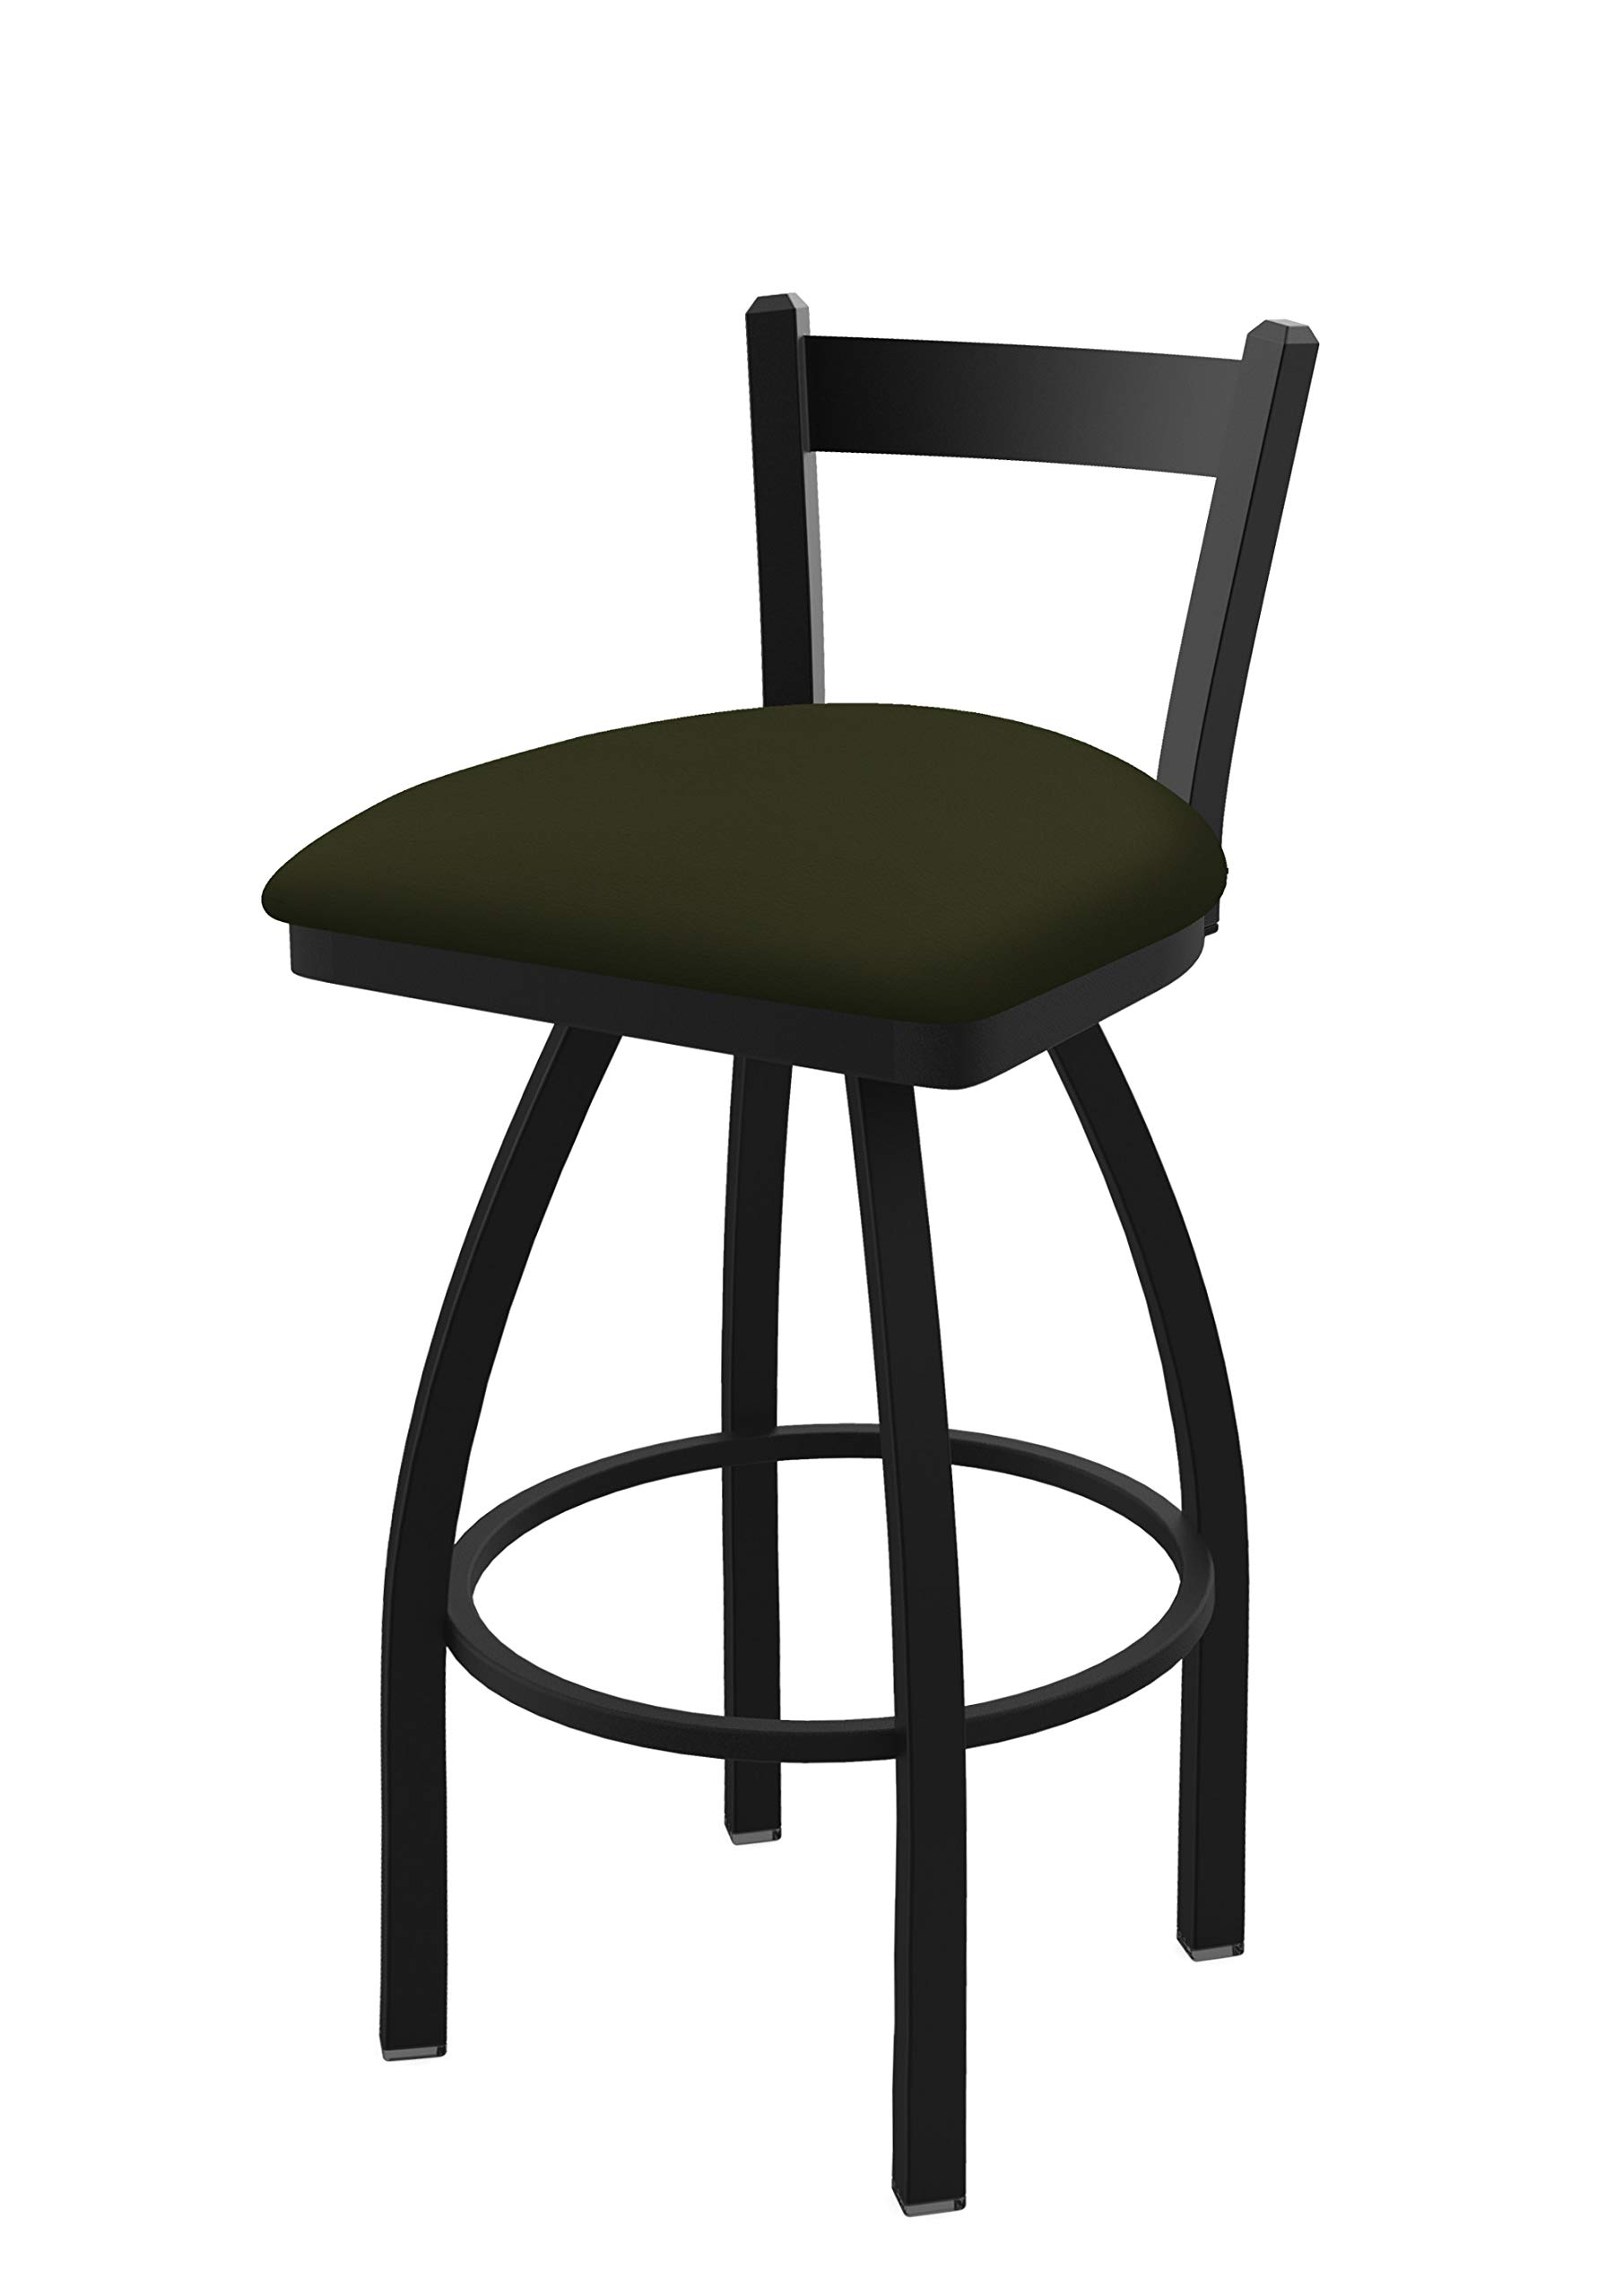 Holland Bar Stool Co. 82125BW010 821 Catalina 25'' Low Back Swivel Counter Black Wrinkle Finish and Canter Pine Seat Bar Stool